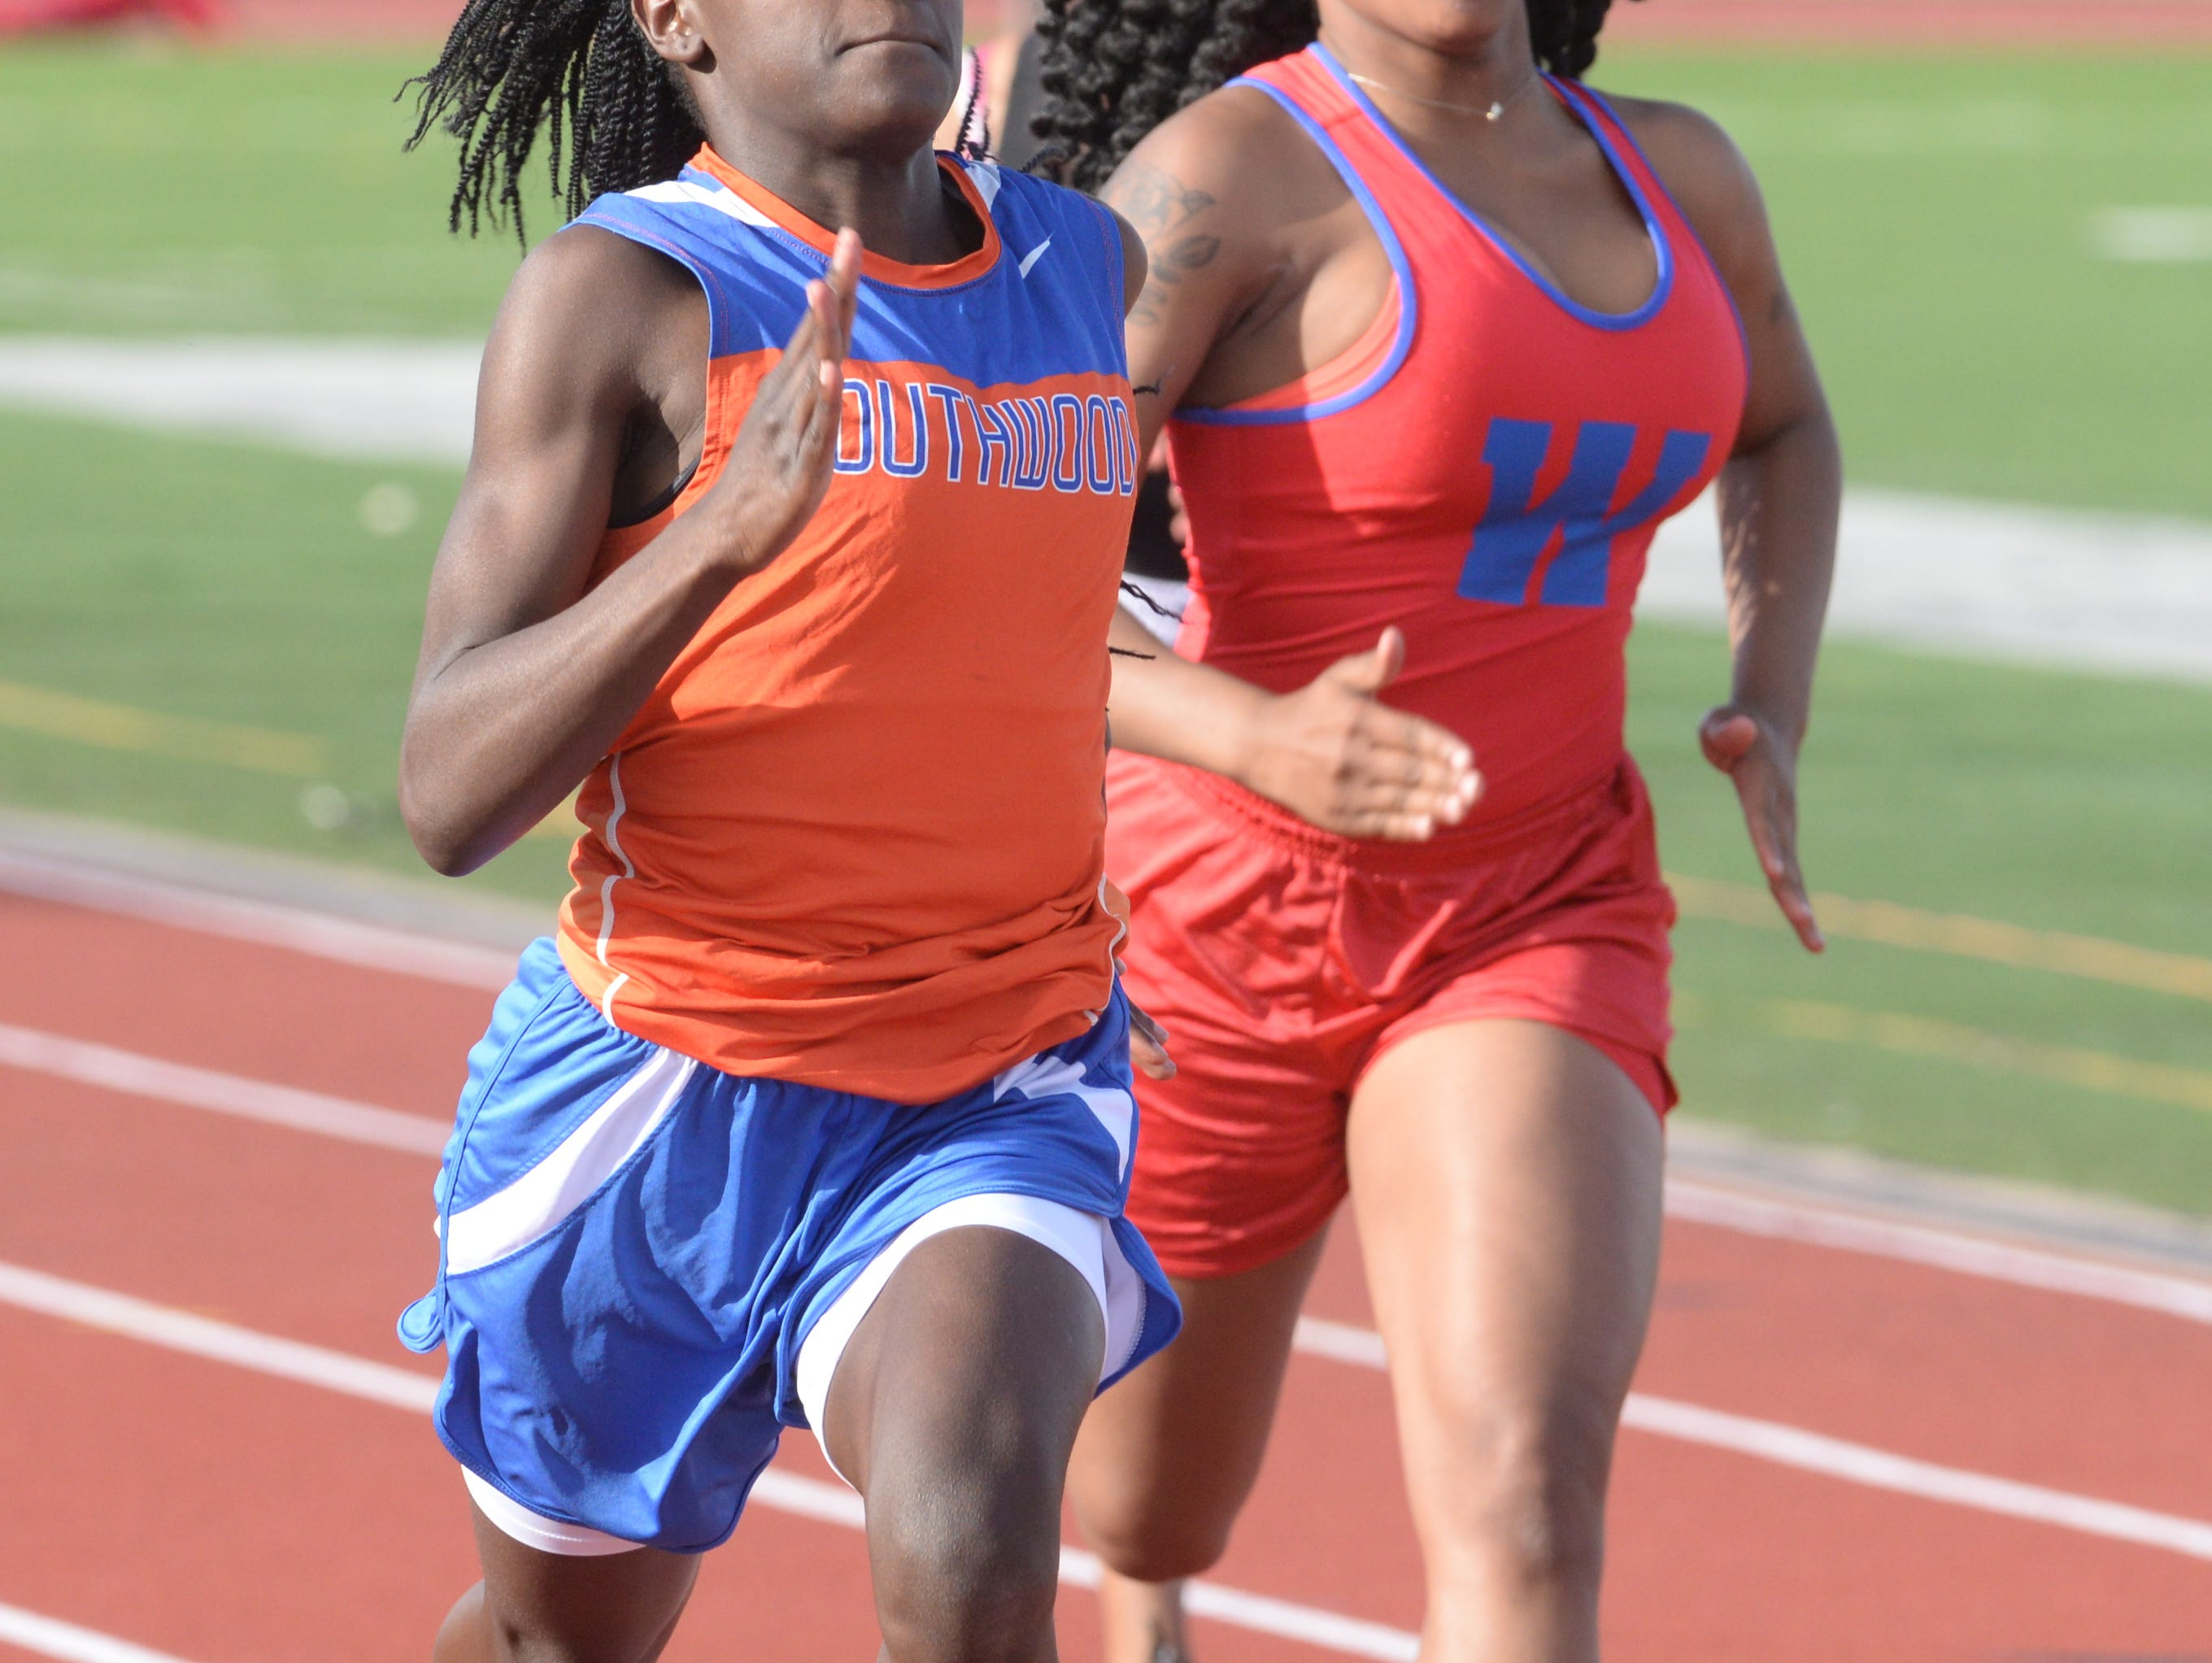 Southwwod's Heaven Black edges out Desiree Horton of Woodlawn in the 100M dash at the Shreveport relays.